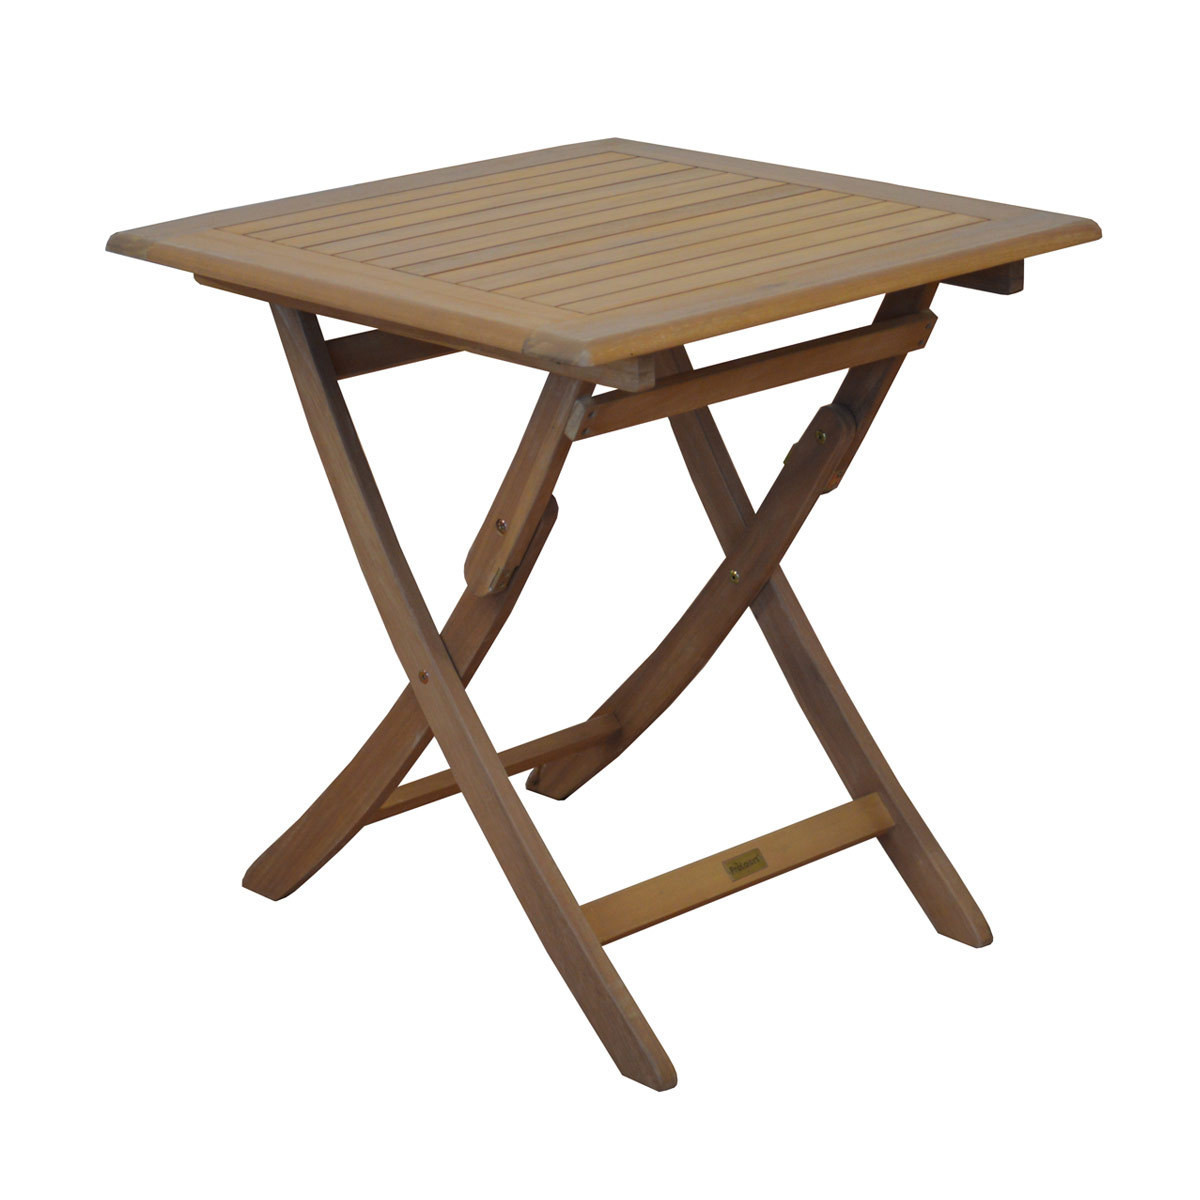 Table de jardin pliante Eucalyptus